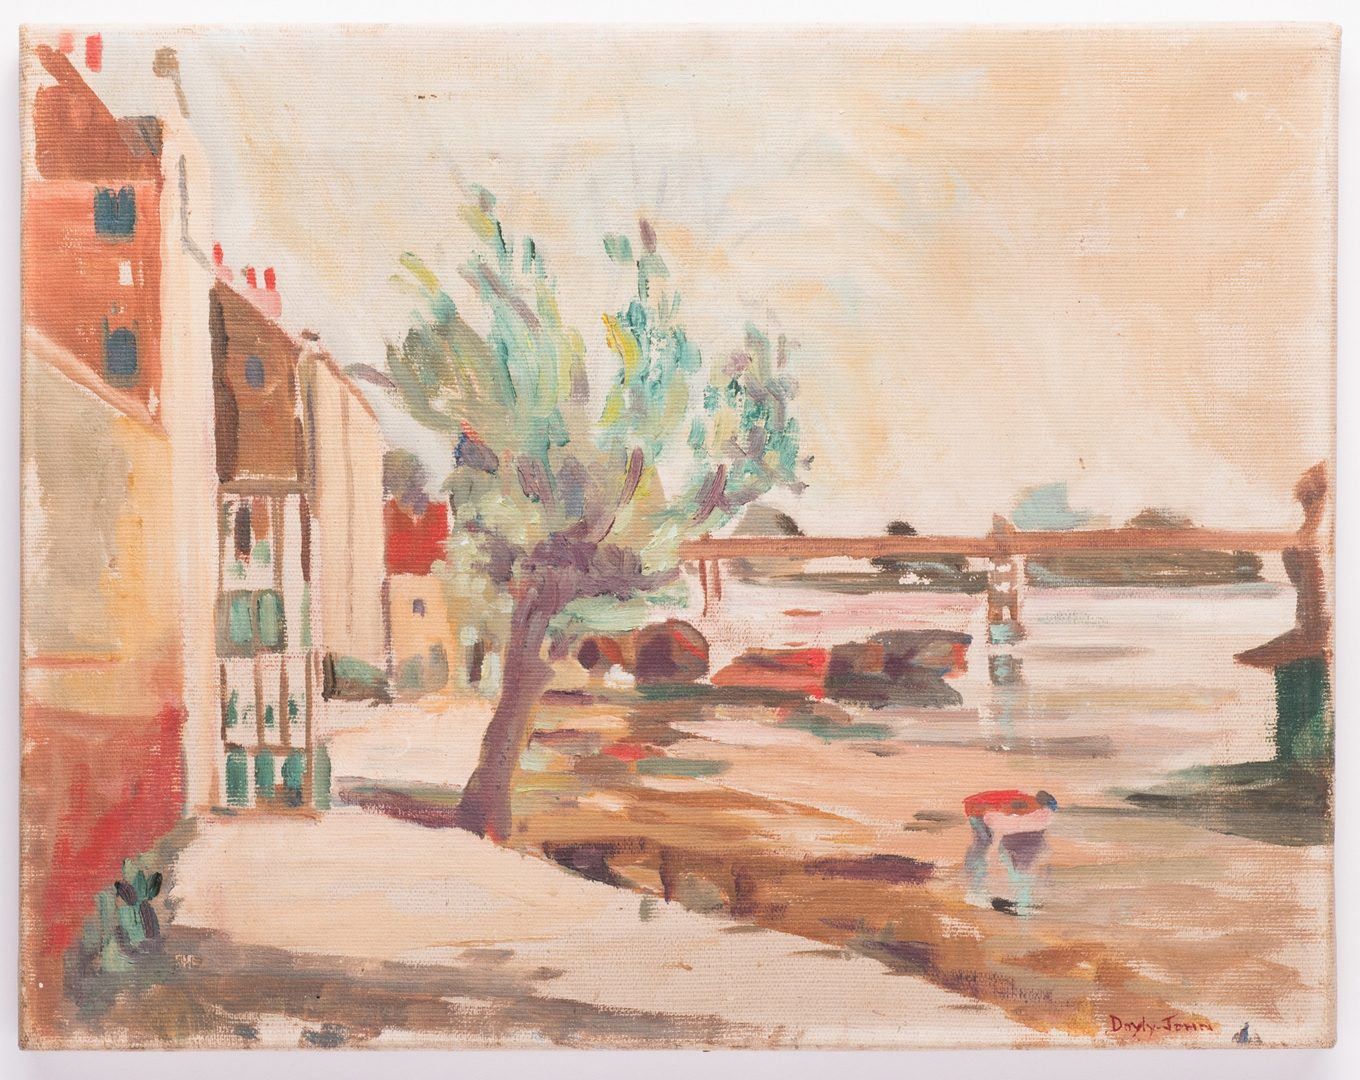 Lot 37: Signed Doyly-John Riverfront Scene, Oil on Canvas